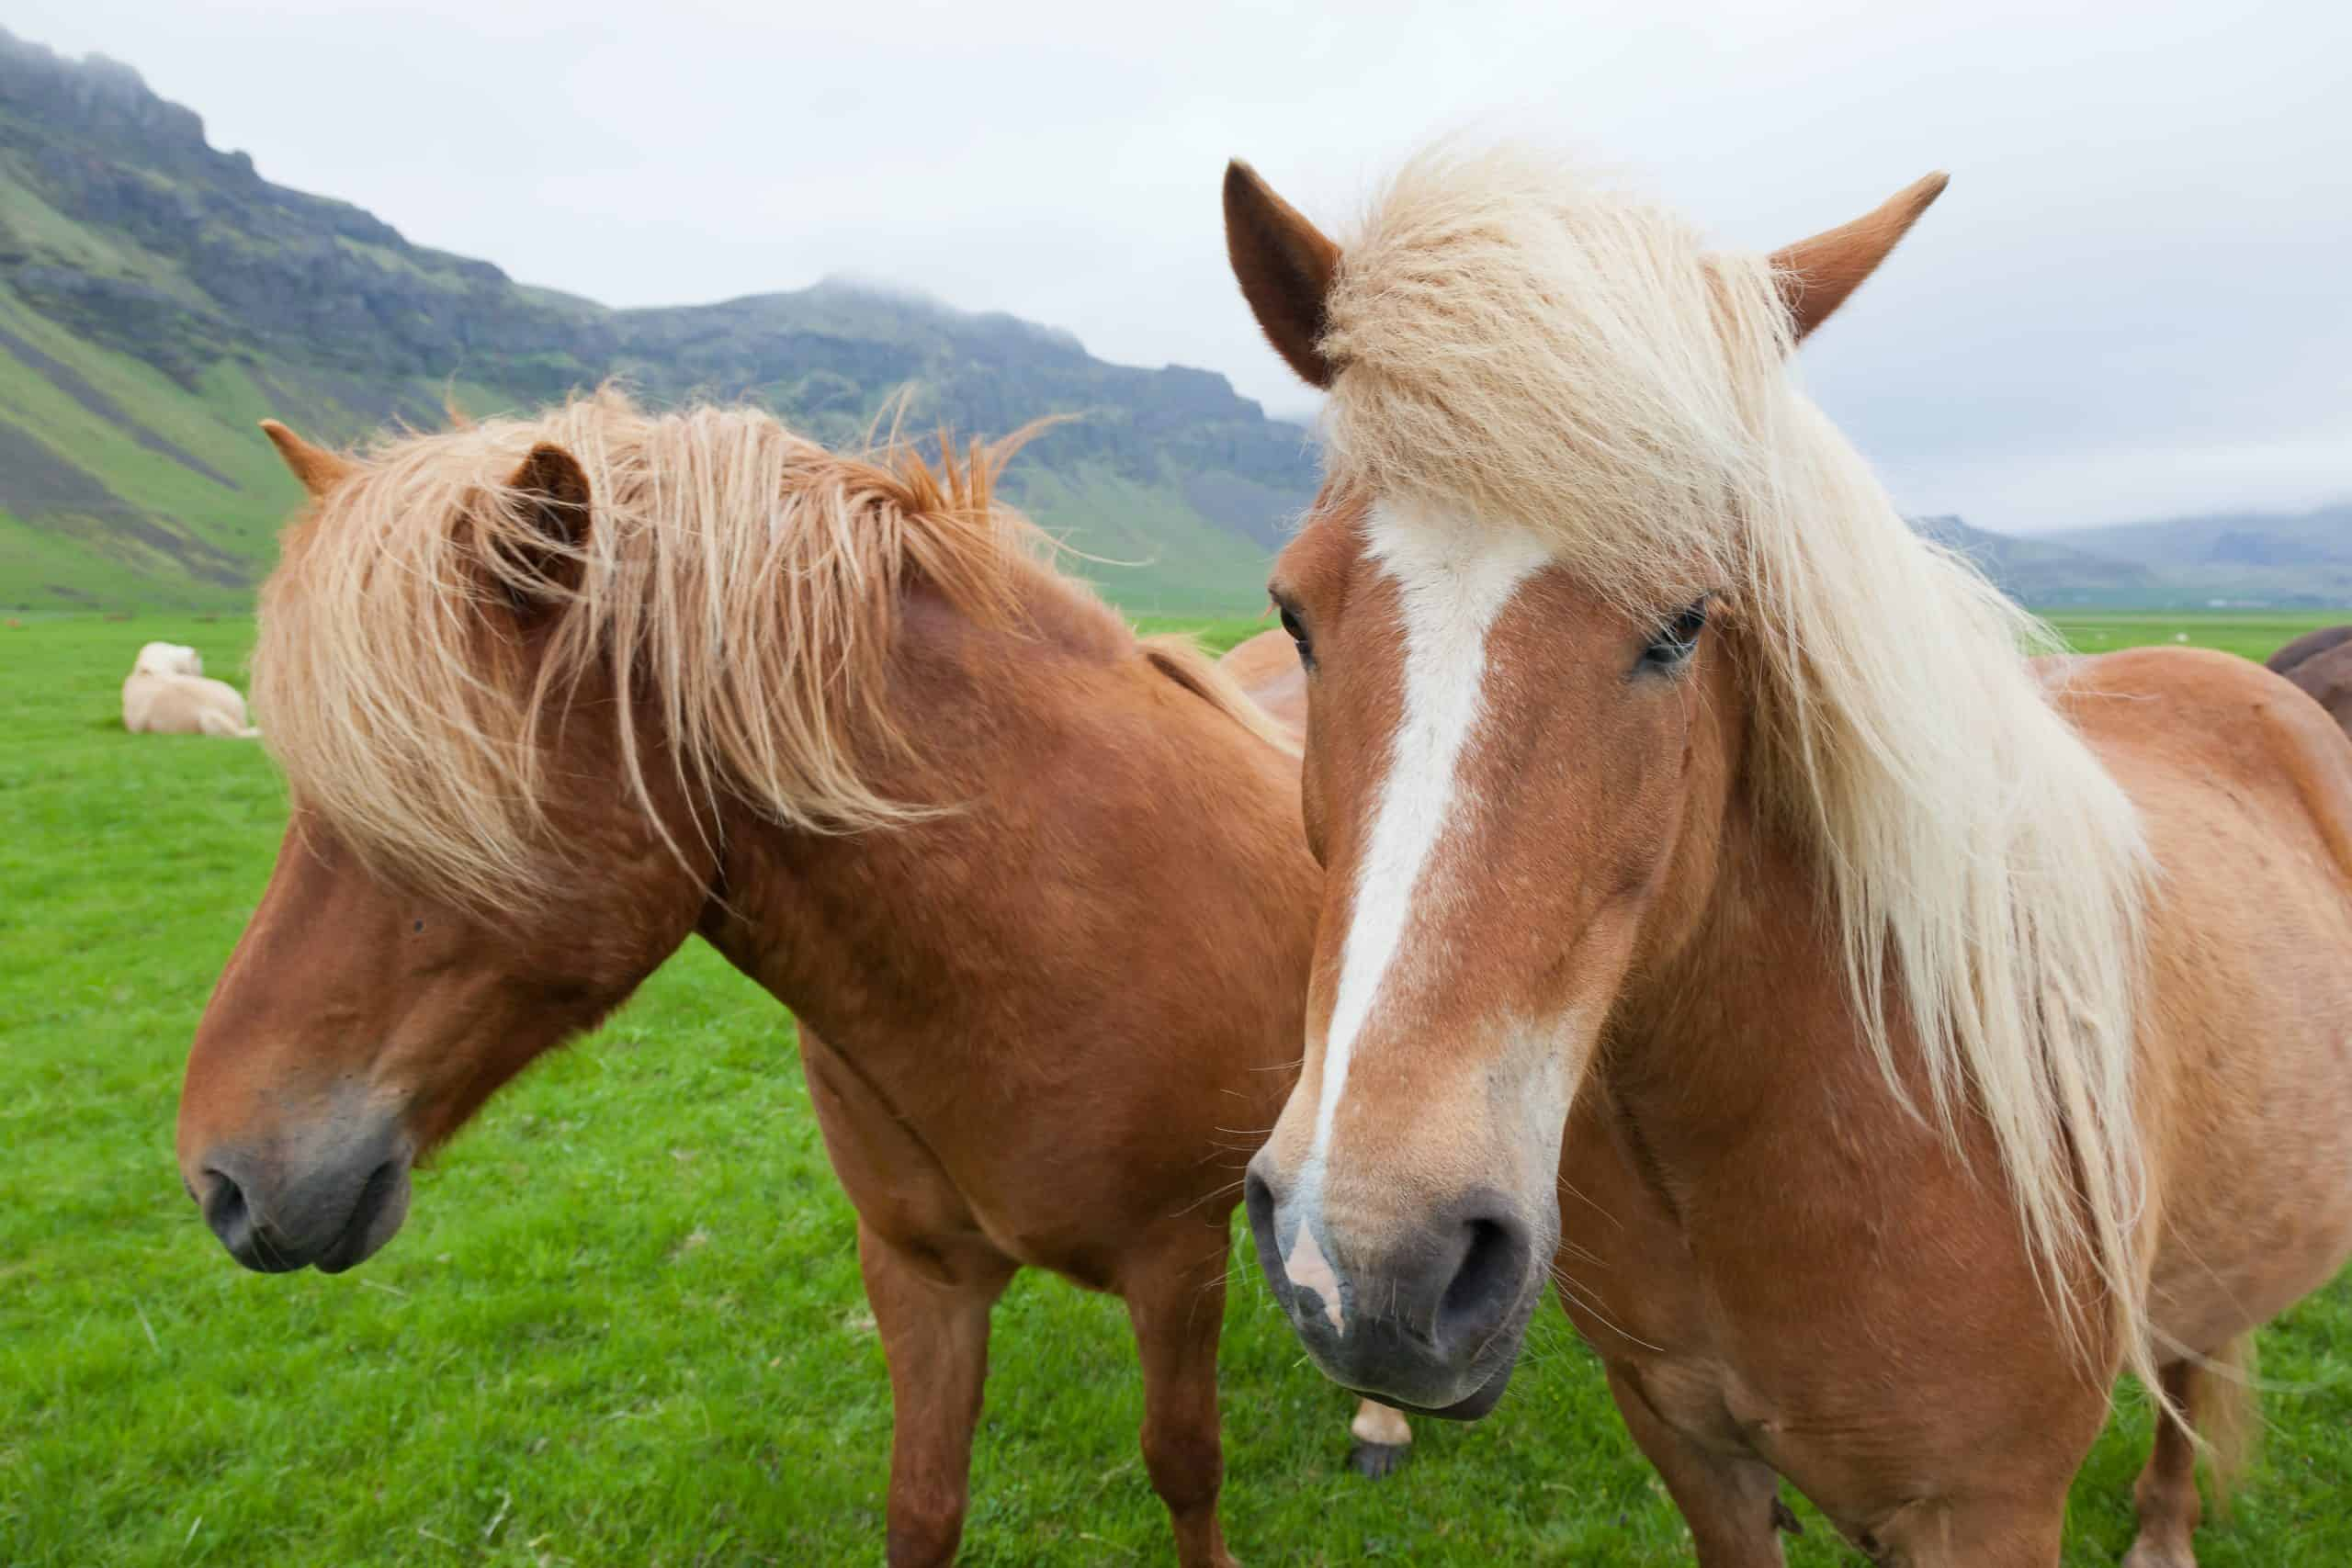 5 Of The Oldest Horse Breeds In The World